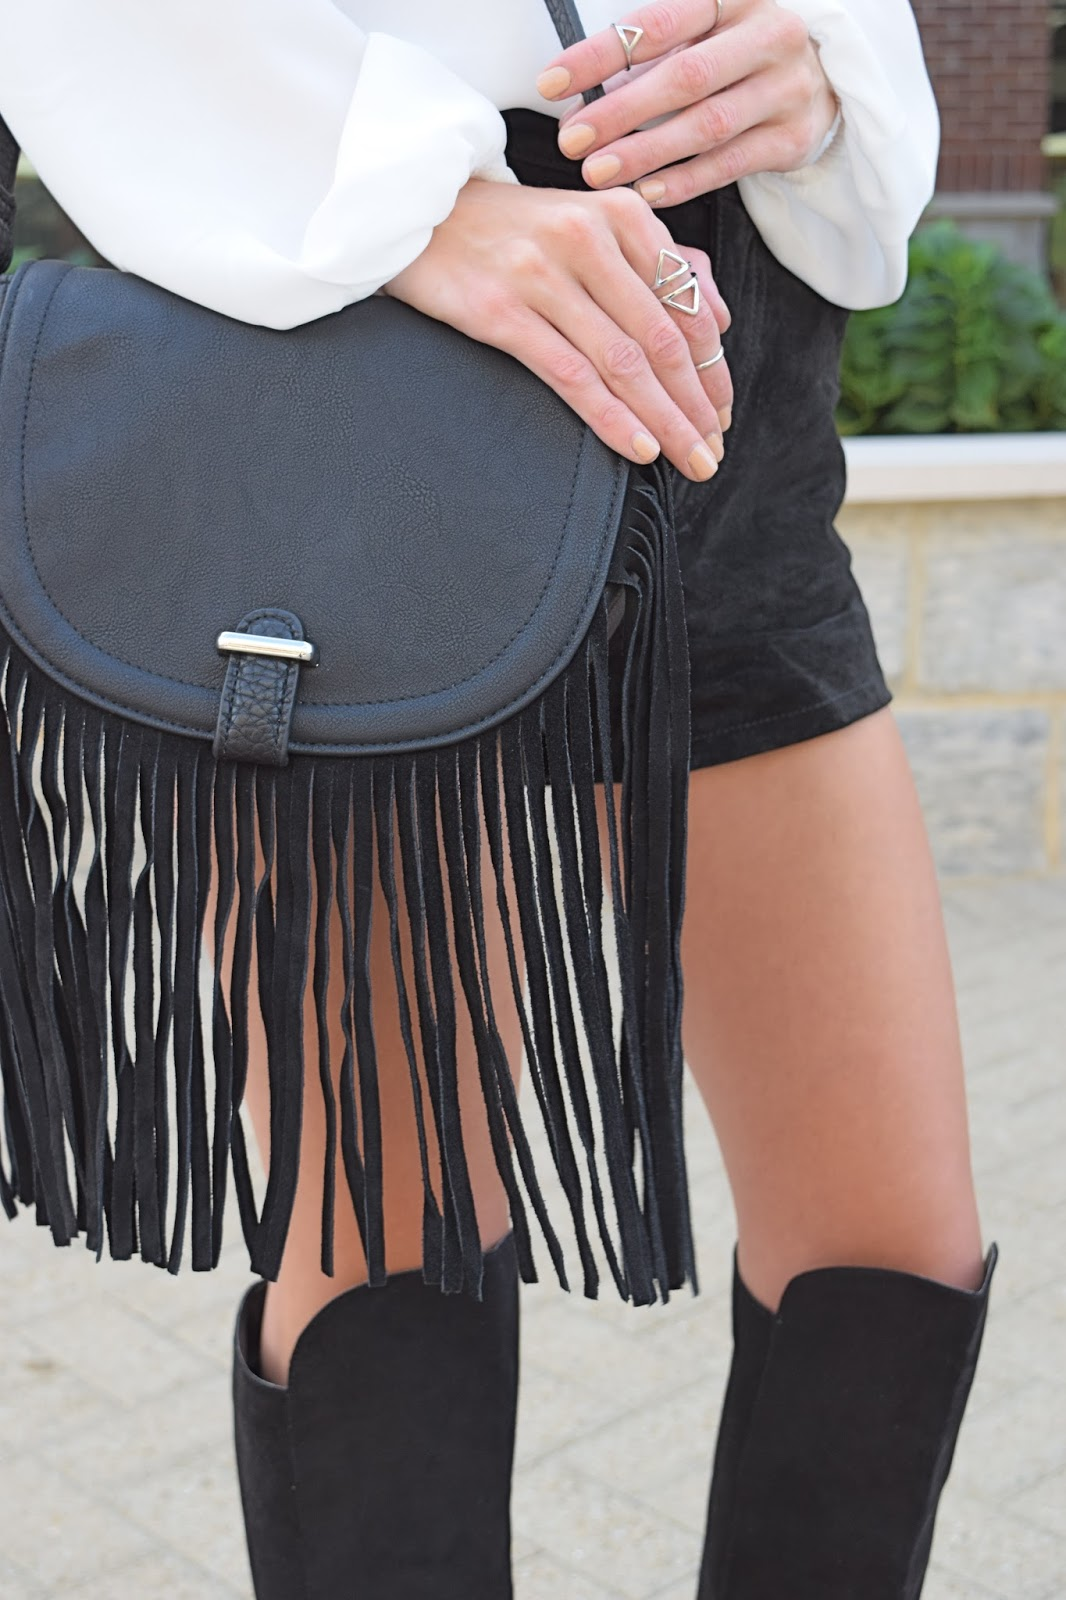 Wearing topshop suede black fringe cross body bag, Forever21 genuine suede black shorts